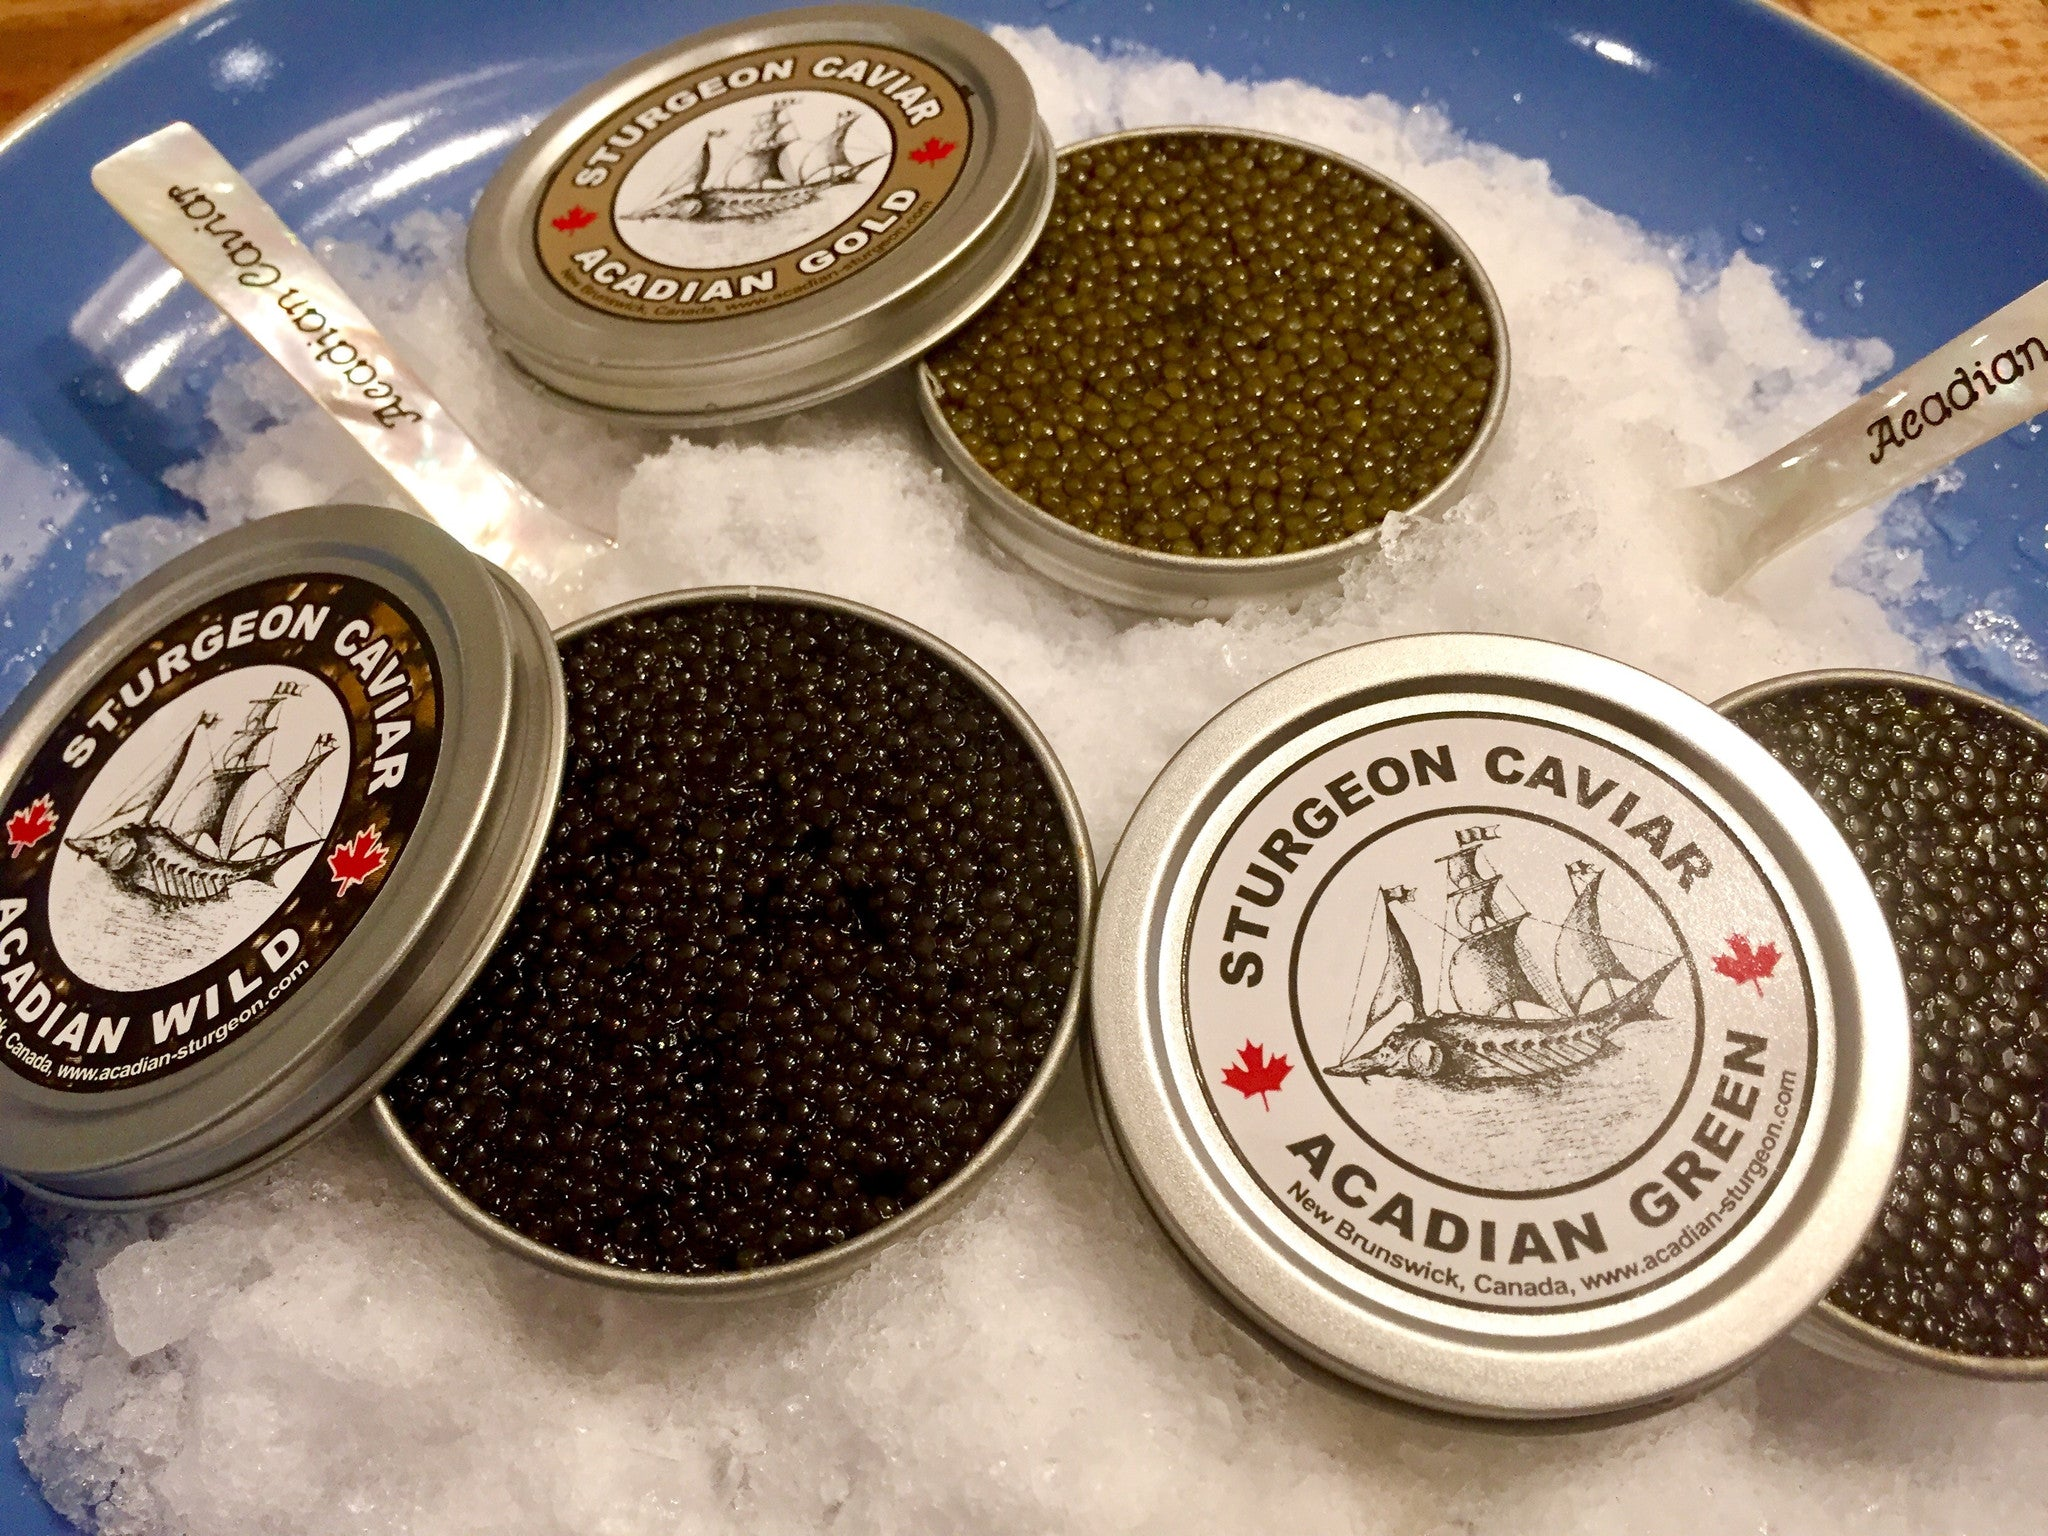 Trio of Acadian Caviar